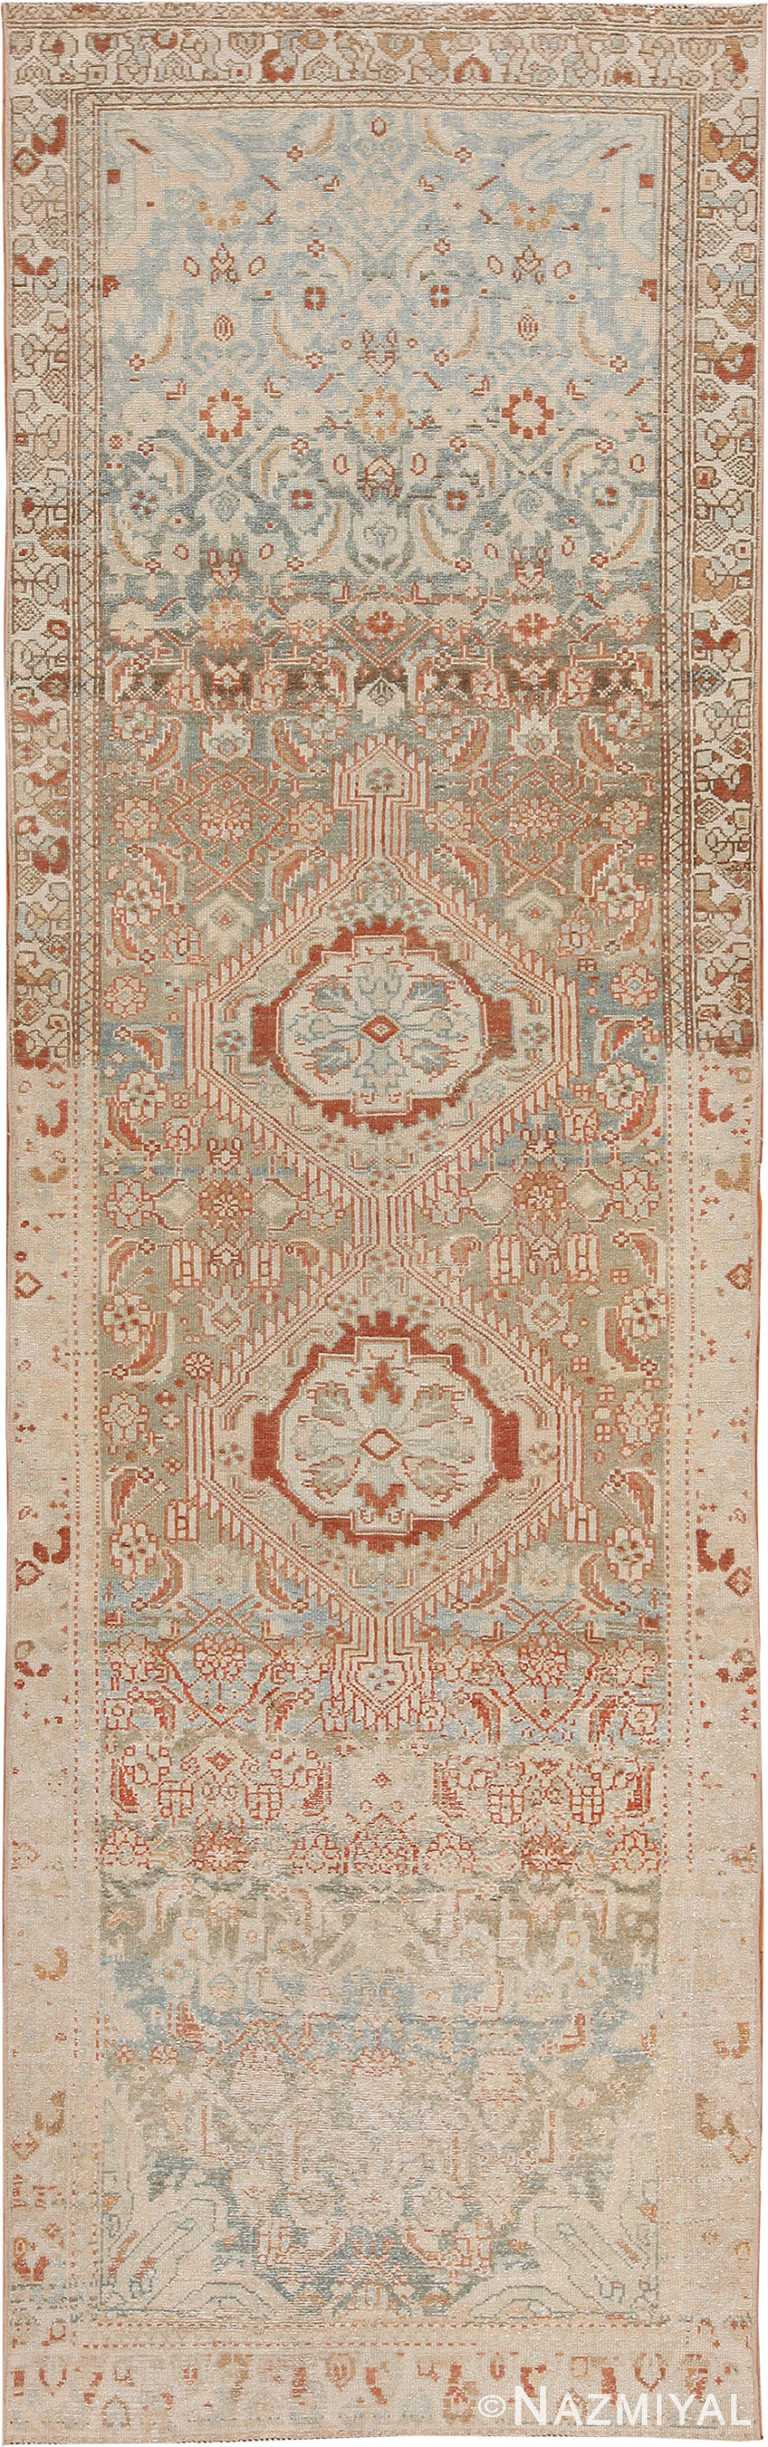 Decorative Antique Persian Malayer Rug 70438 by Nazmiyal NYC